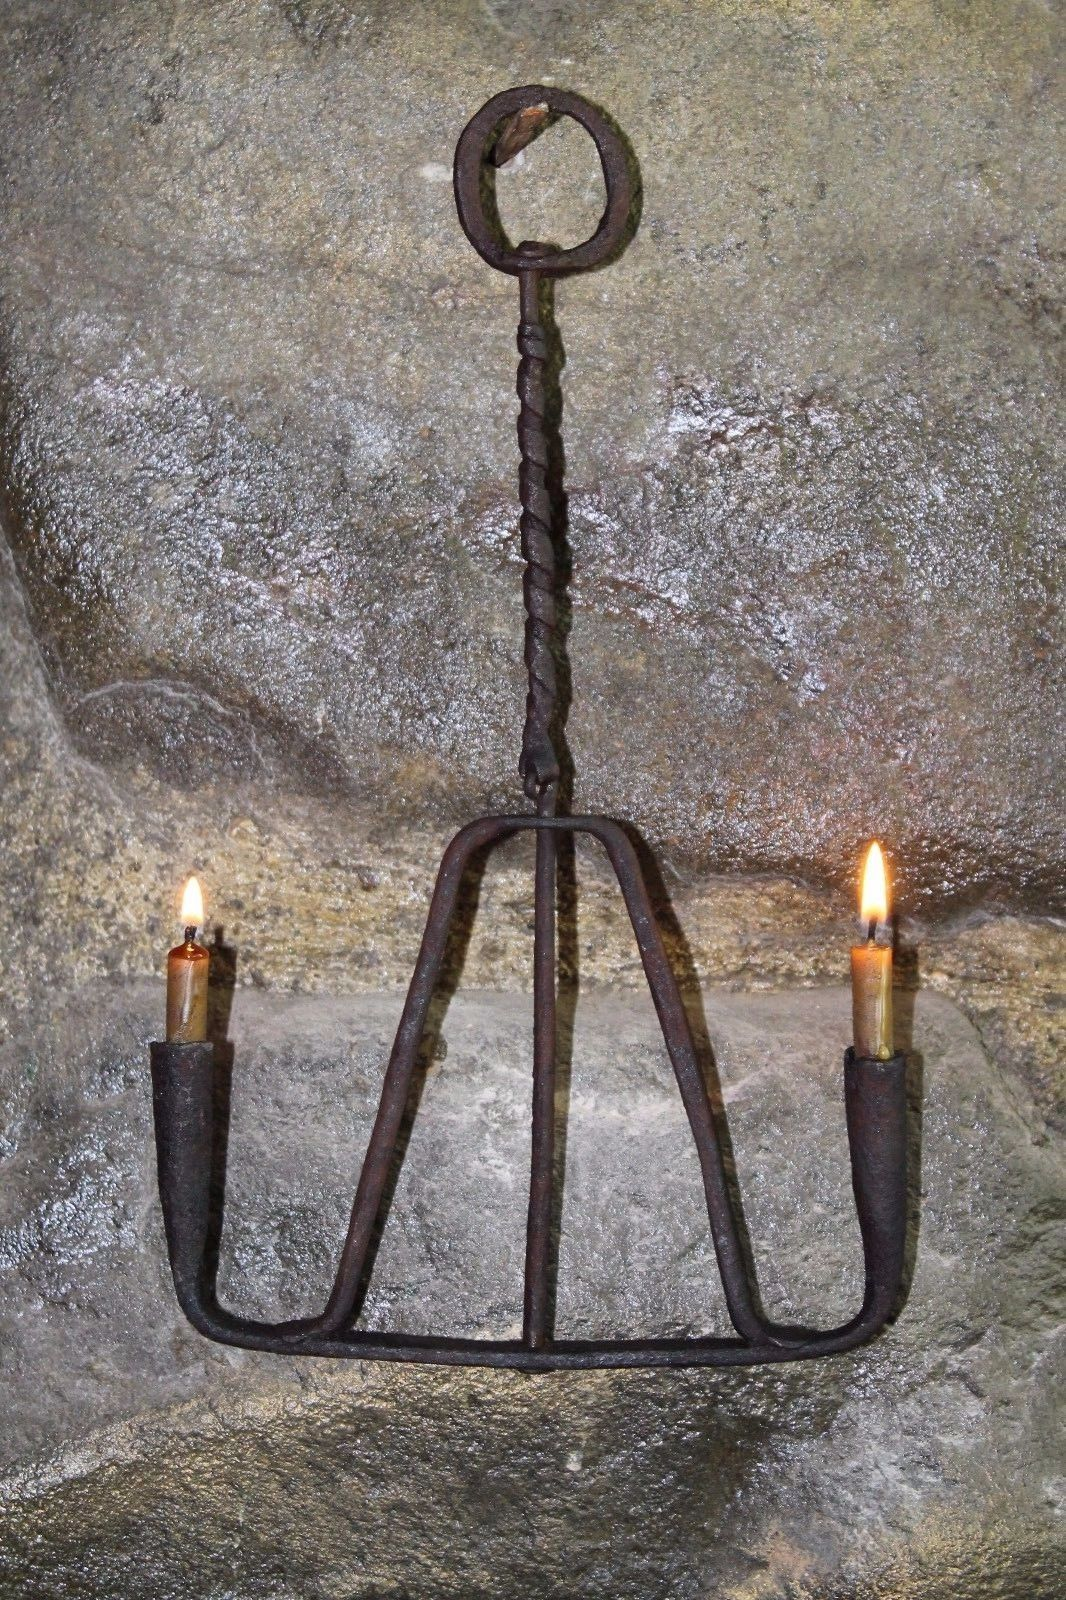 Early 19th Late 18th Century Wrought Iron Rushlight Holder Candlestick Rotary Candle Glow Primitive Lighting Hand Forged Candle Holder